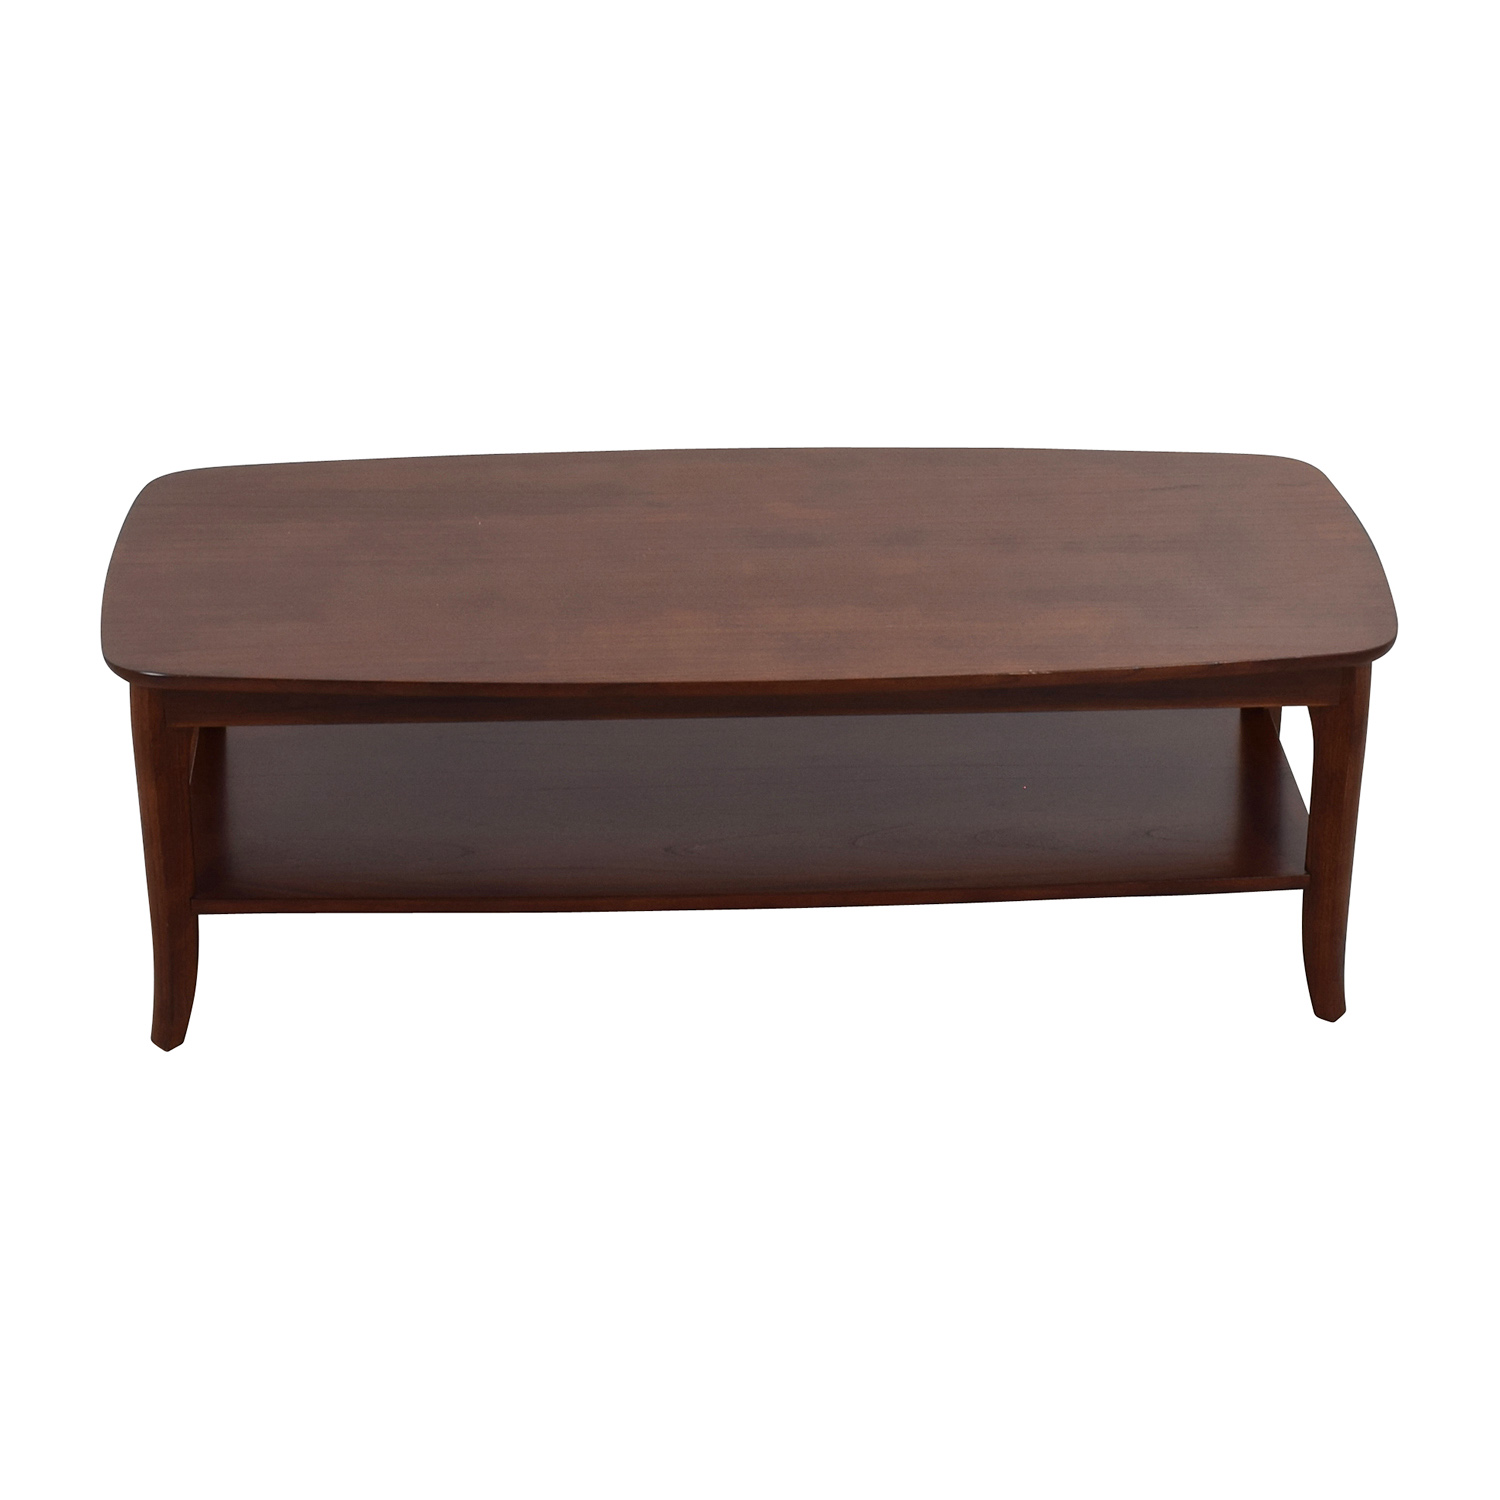 Pottery Barn Pottery Barn Rectangular Coffee Table for sale